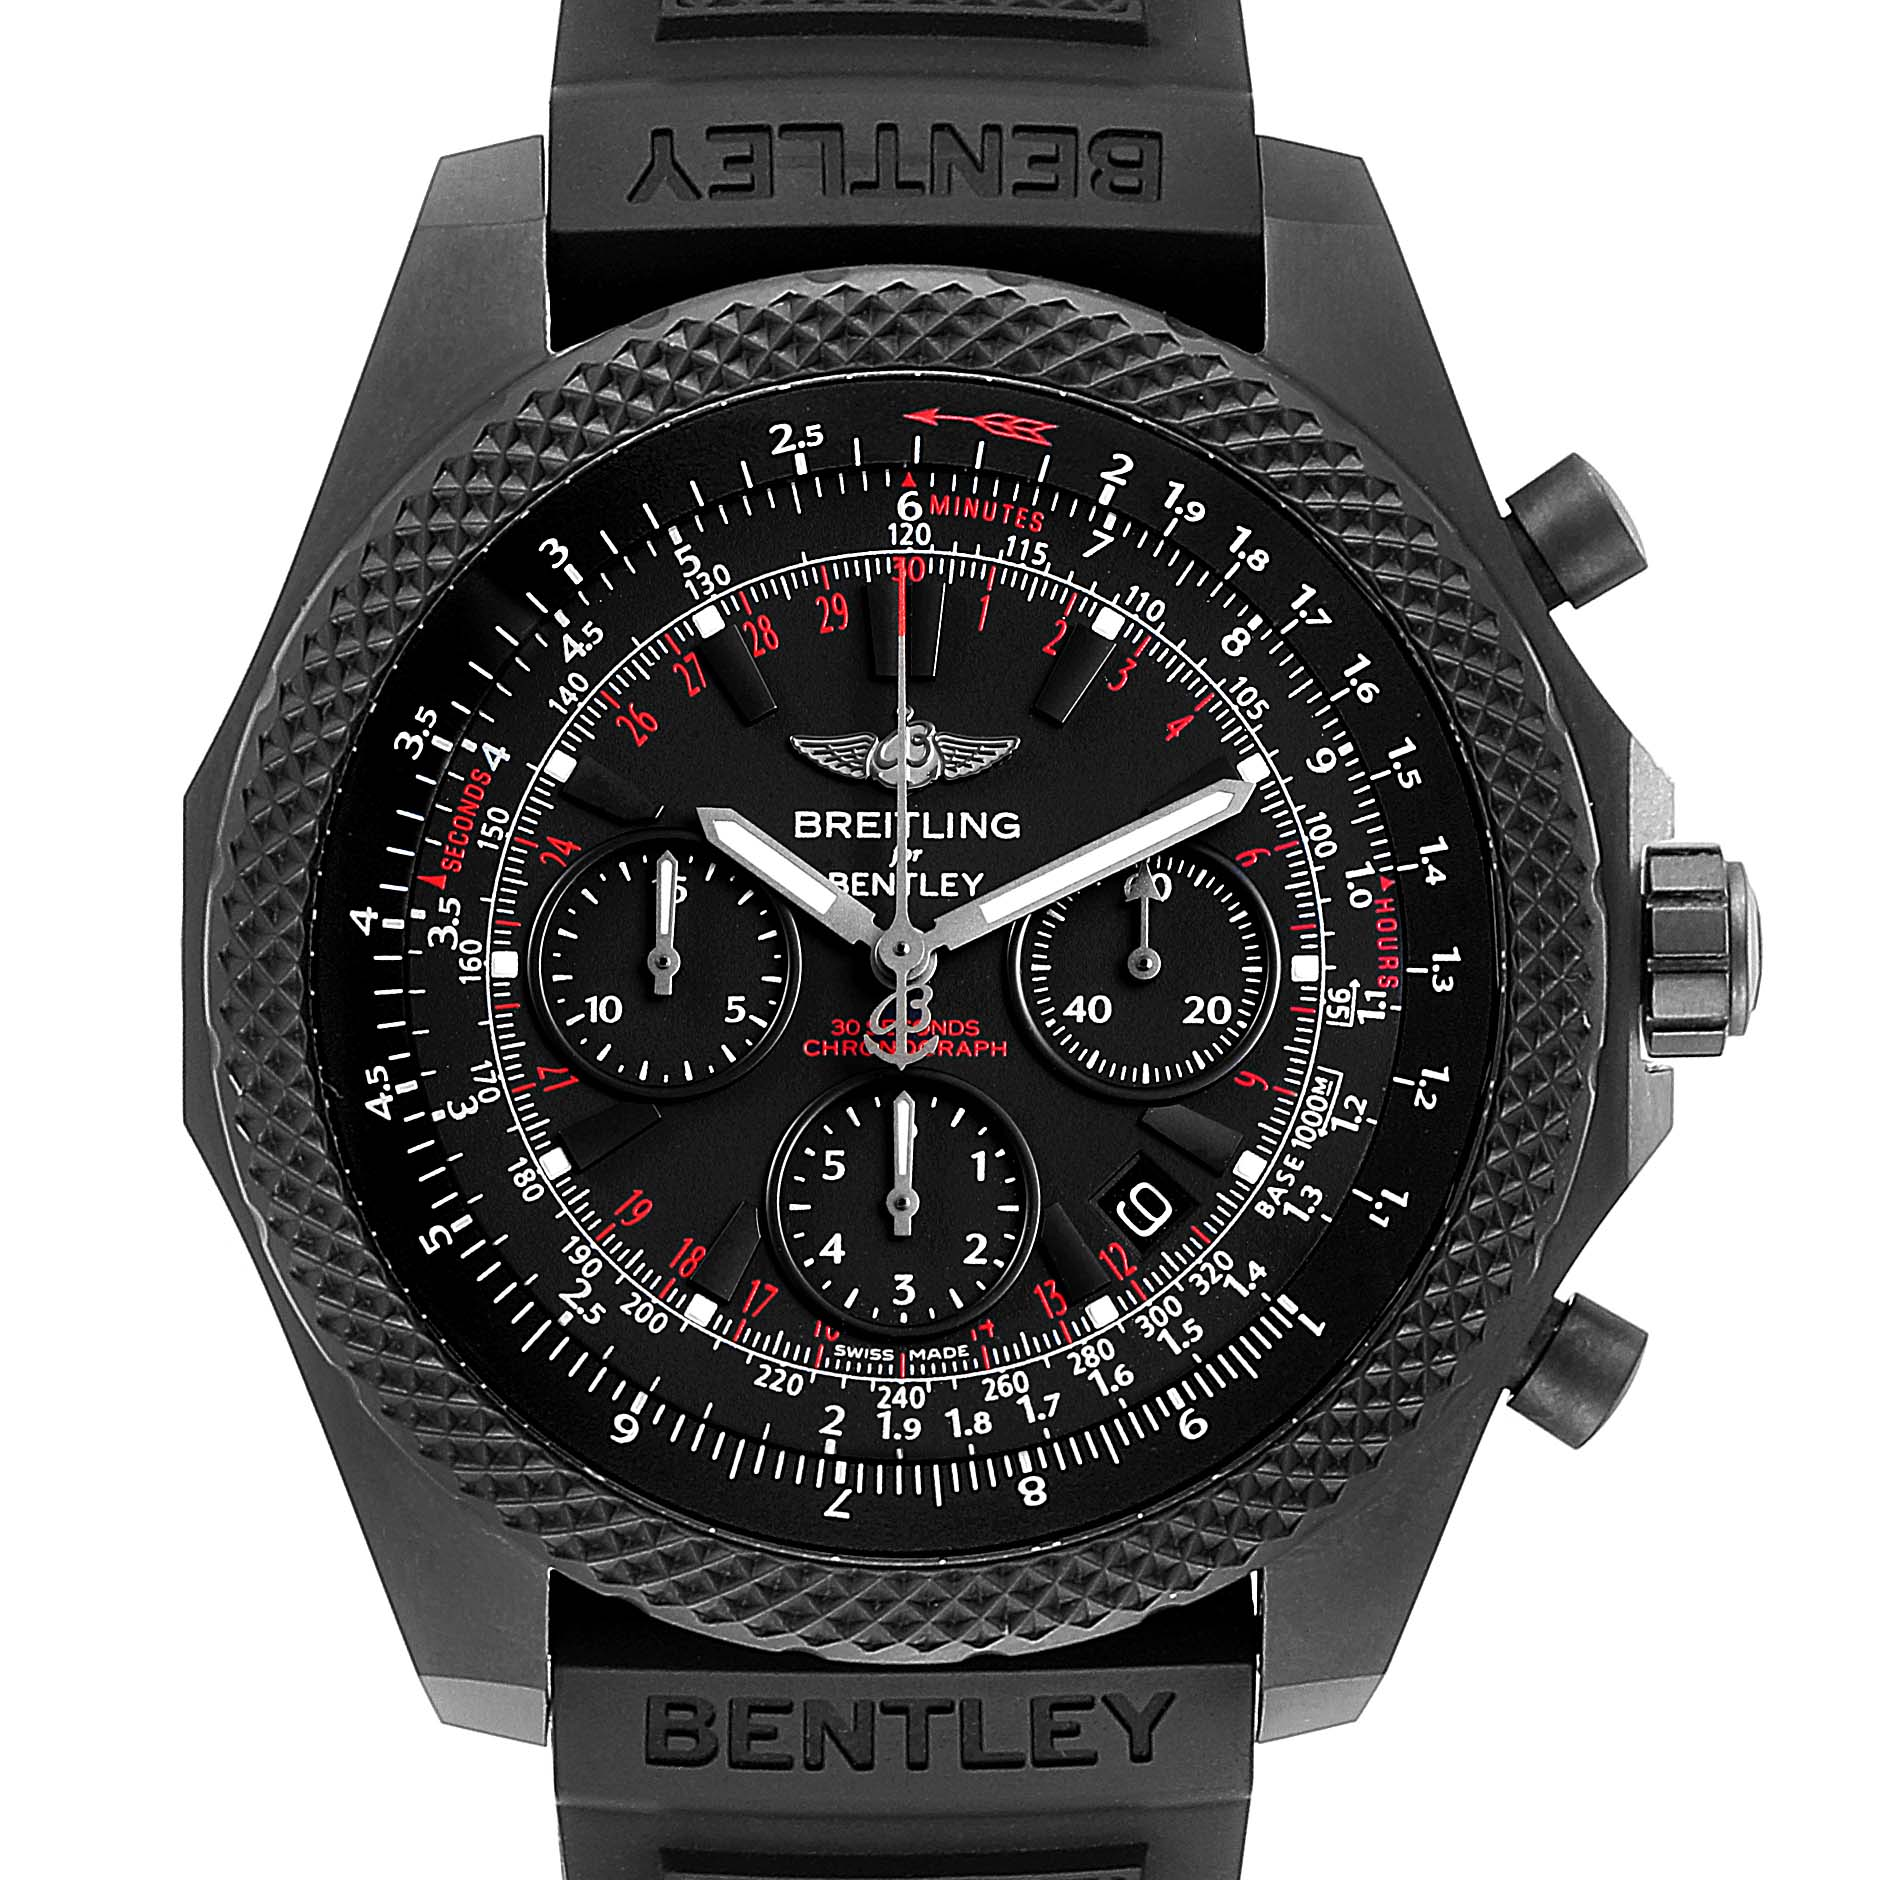 Photo of Breitling Bentley Light Body Midnight Carbon Ruber Strap LE Watch V25367